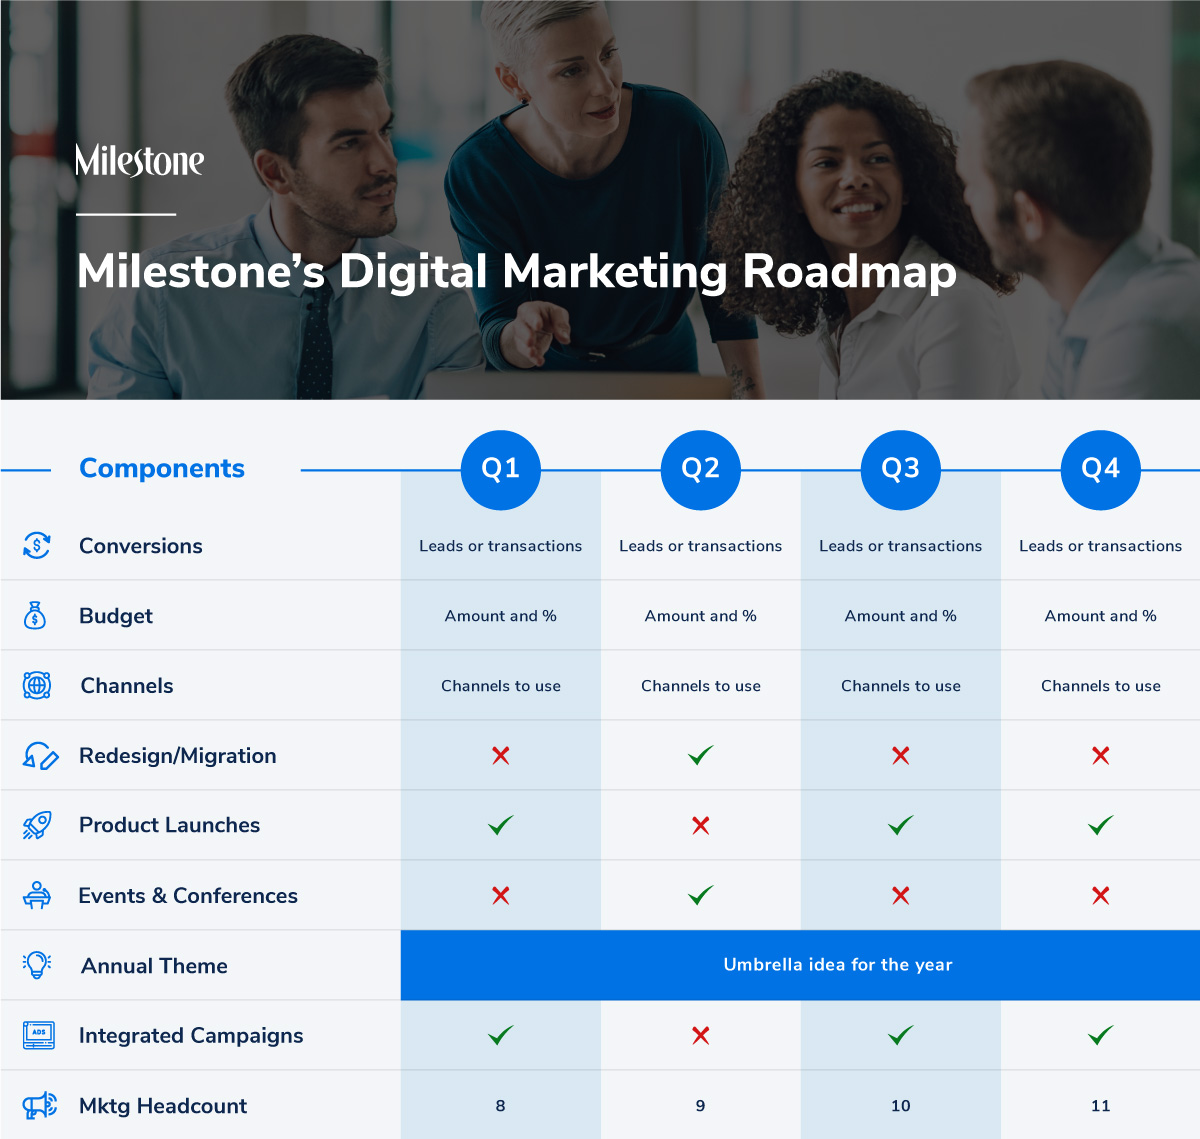 Digital marketing roadmap to success in 2020